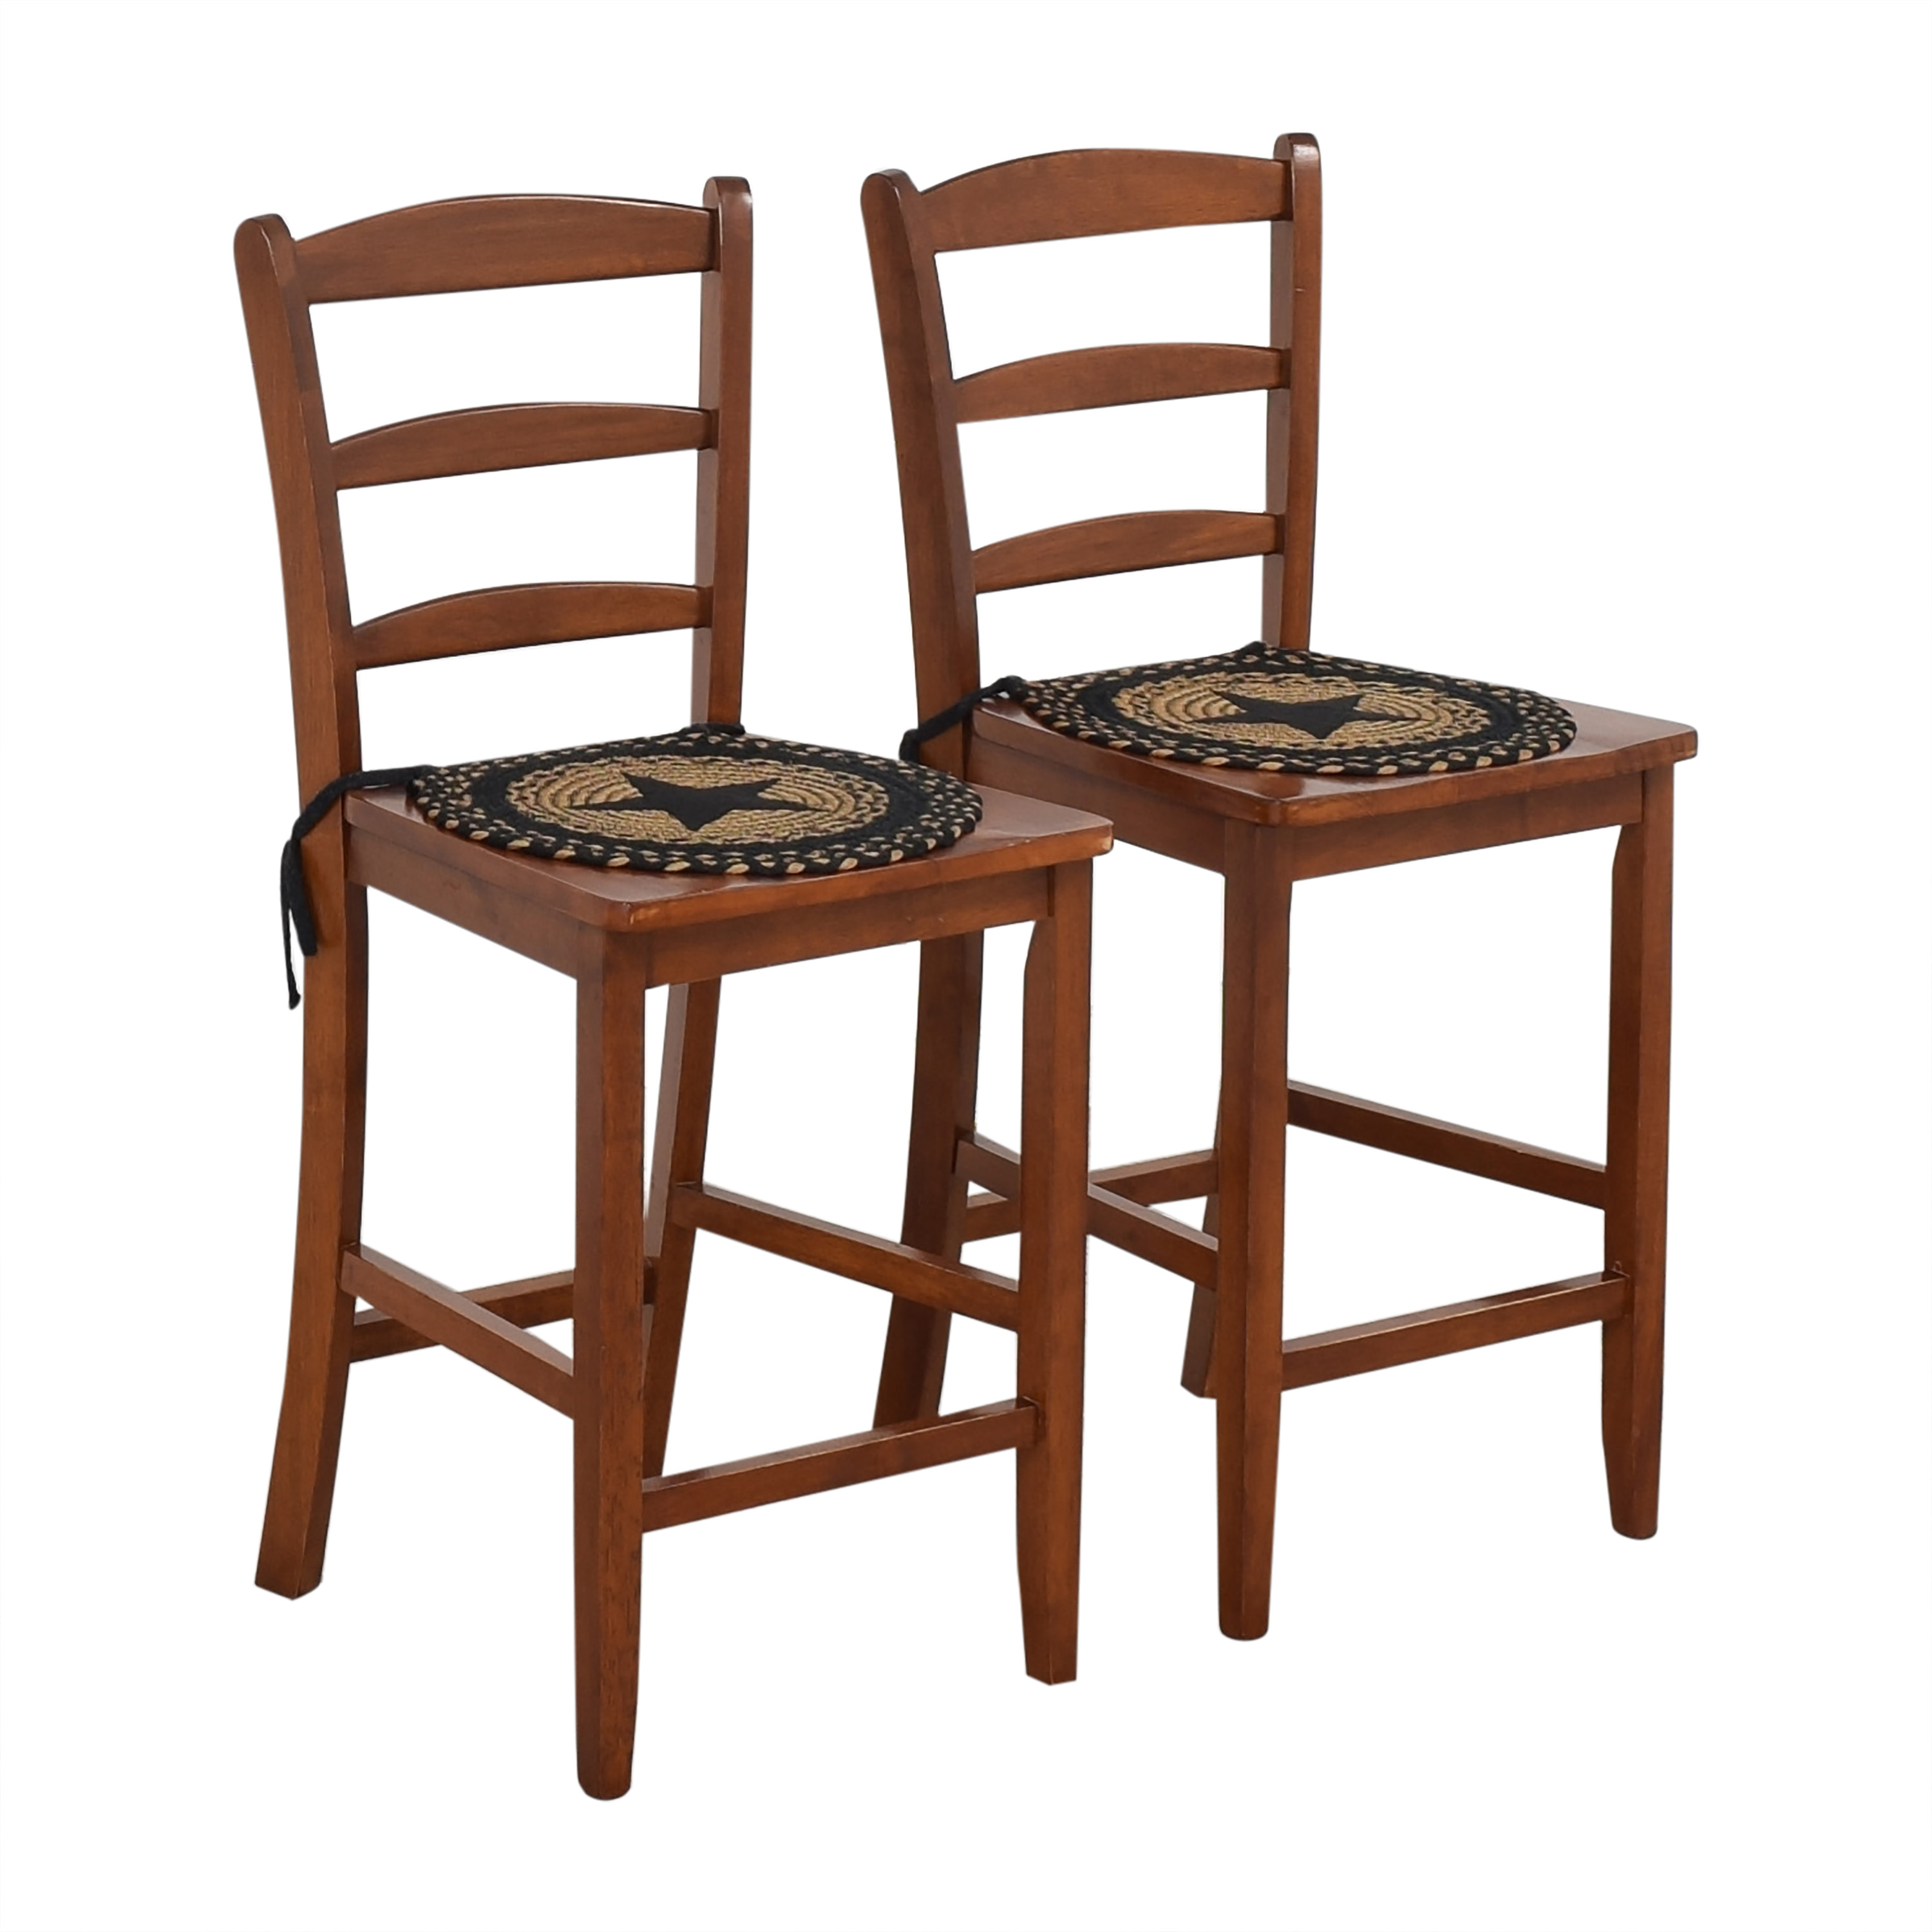 Winsome Wood Winsome Wood Albany Ladder Back Counter Stools brown